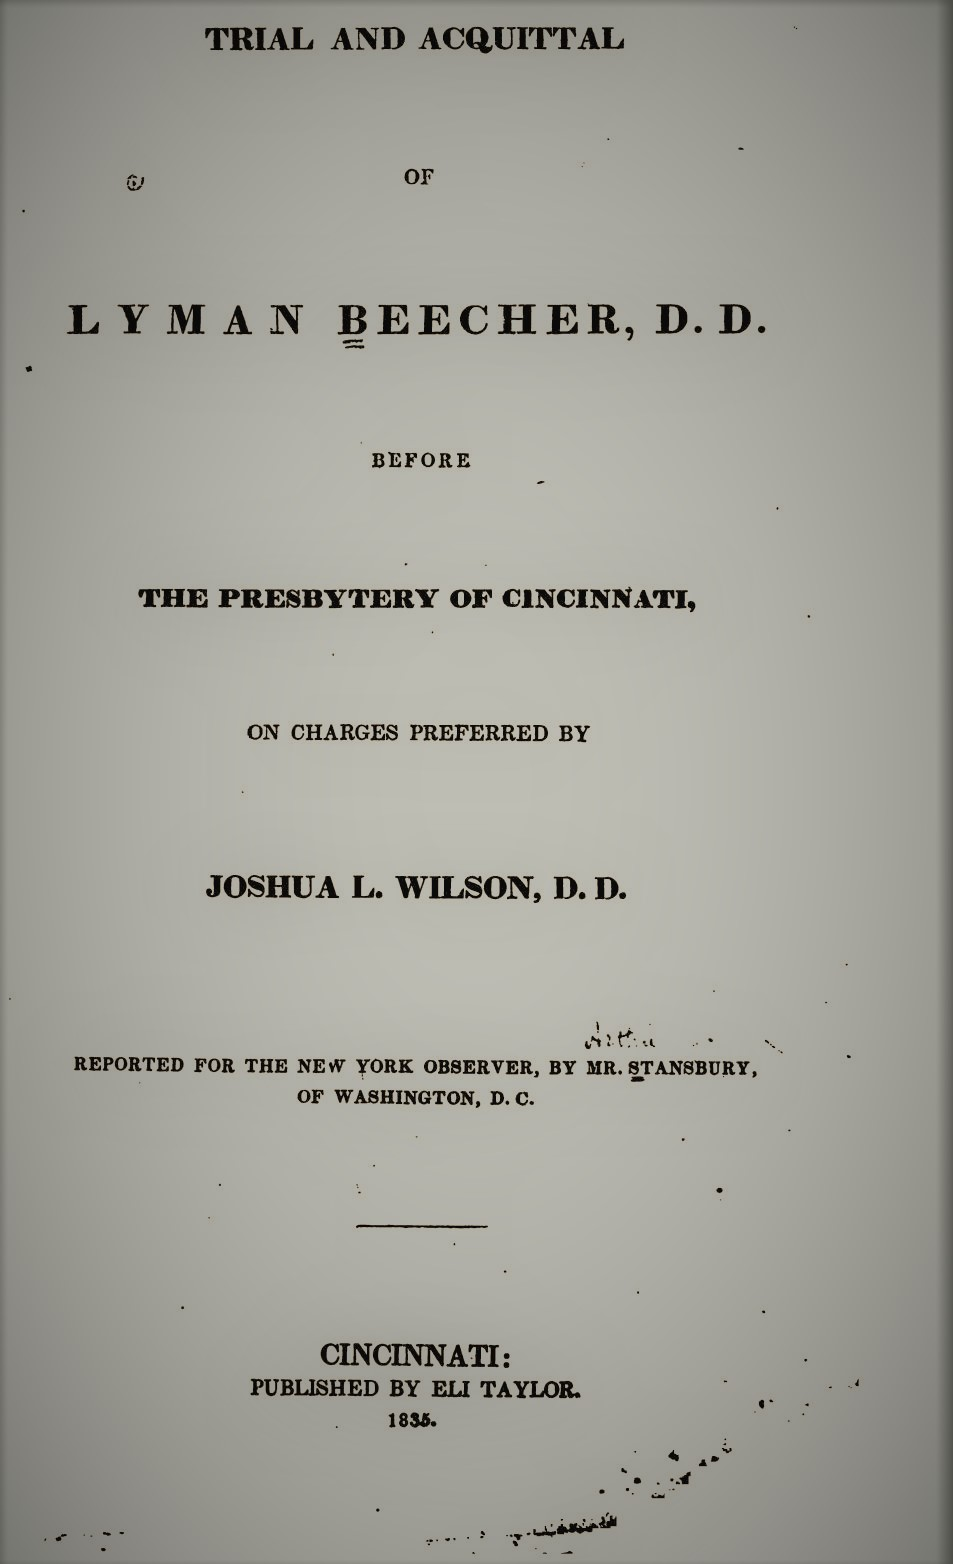 Wilson, Joshua Lacy - Trial and Acquittal of Lyman Beecher.jpg